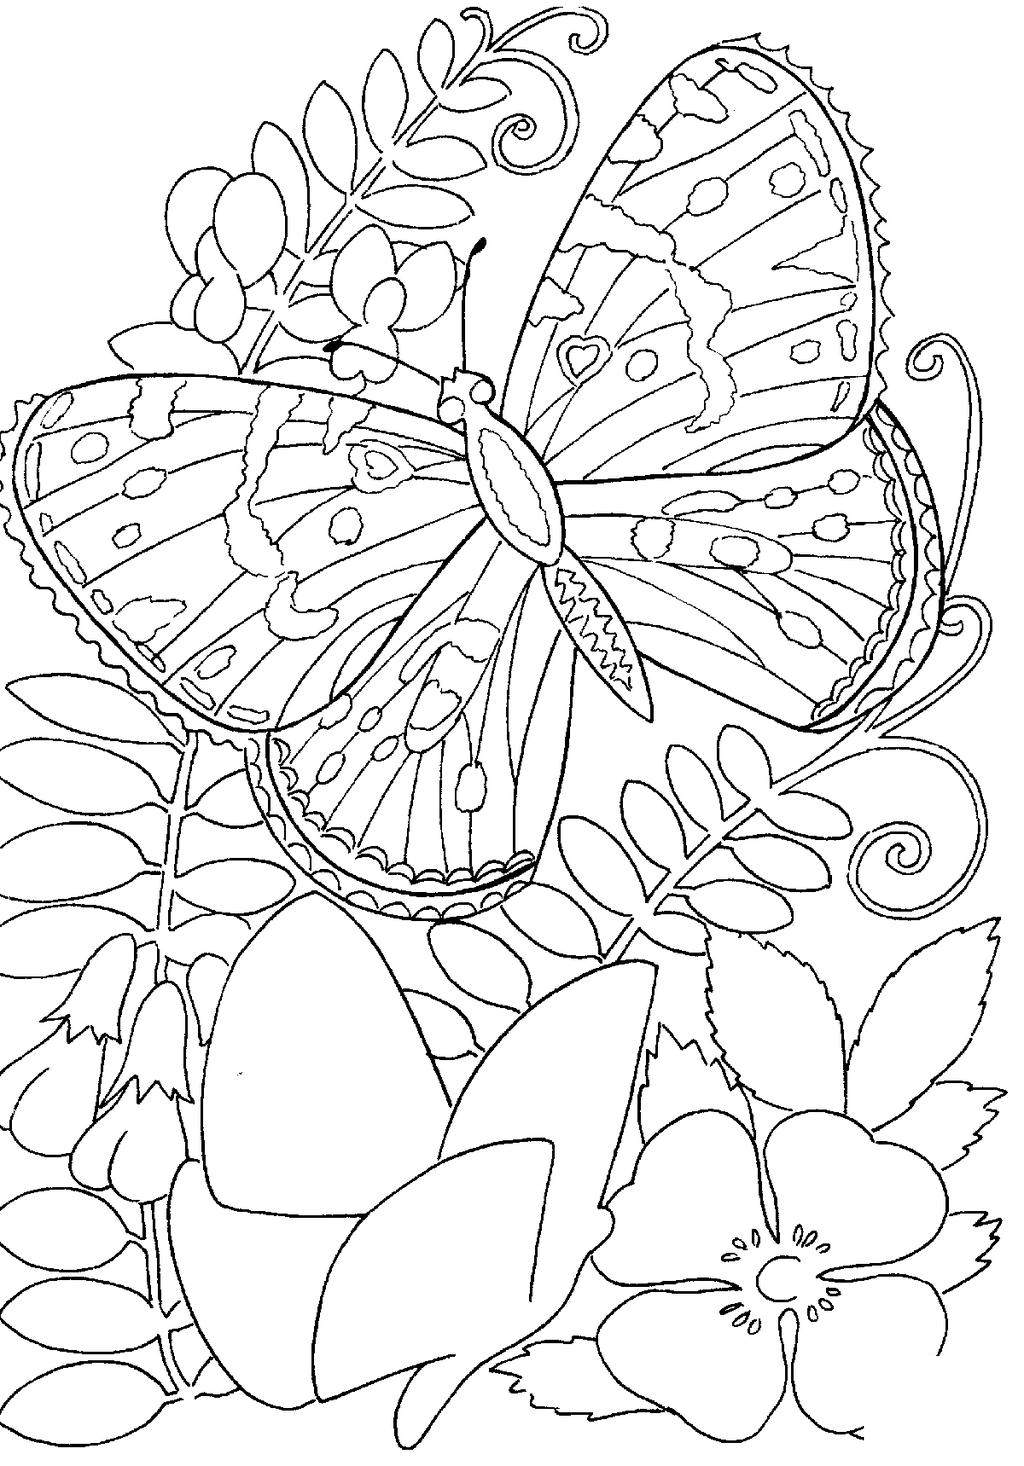 Free Butterfly And Flower Coloring Pages Among Flowers Coloring Sheets printable